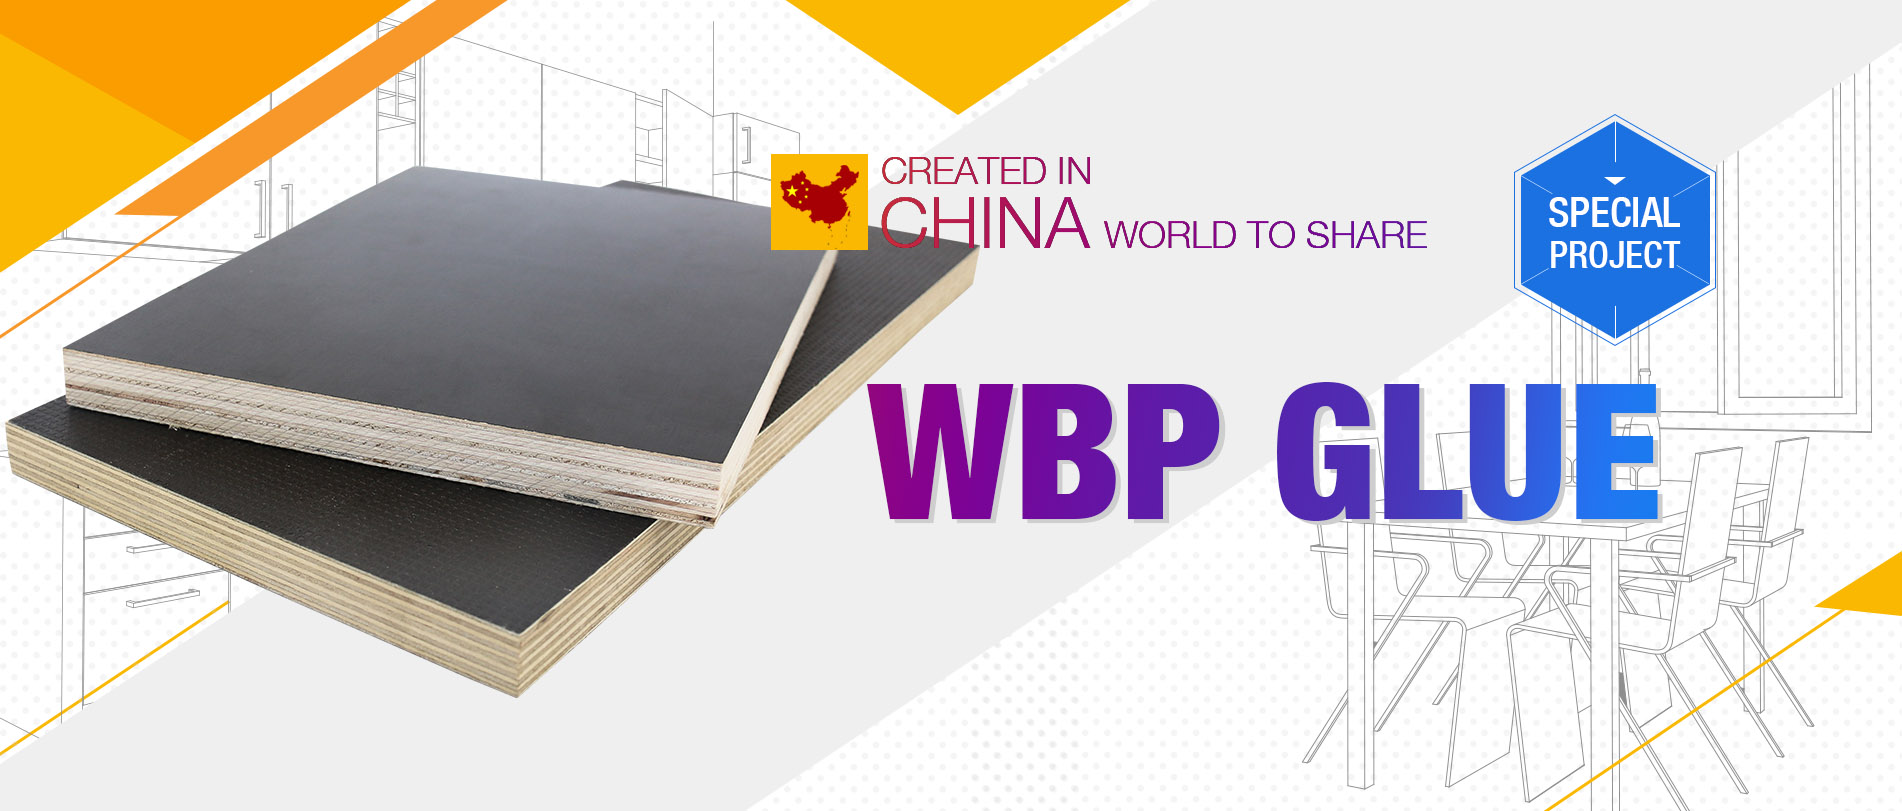 What is WBP Glue?